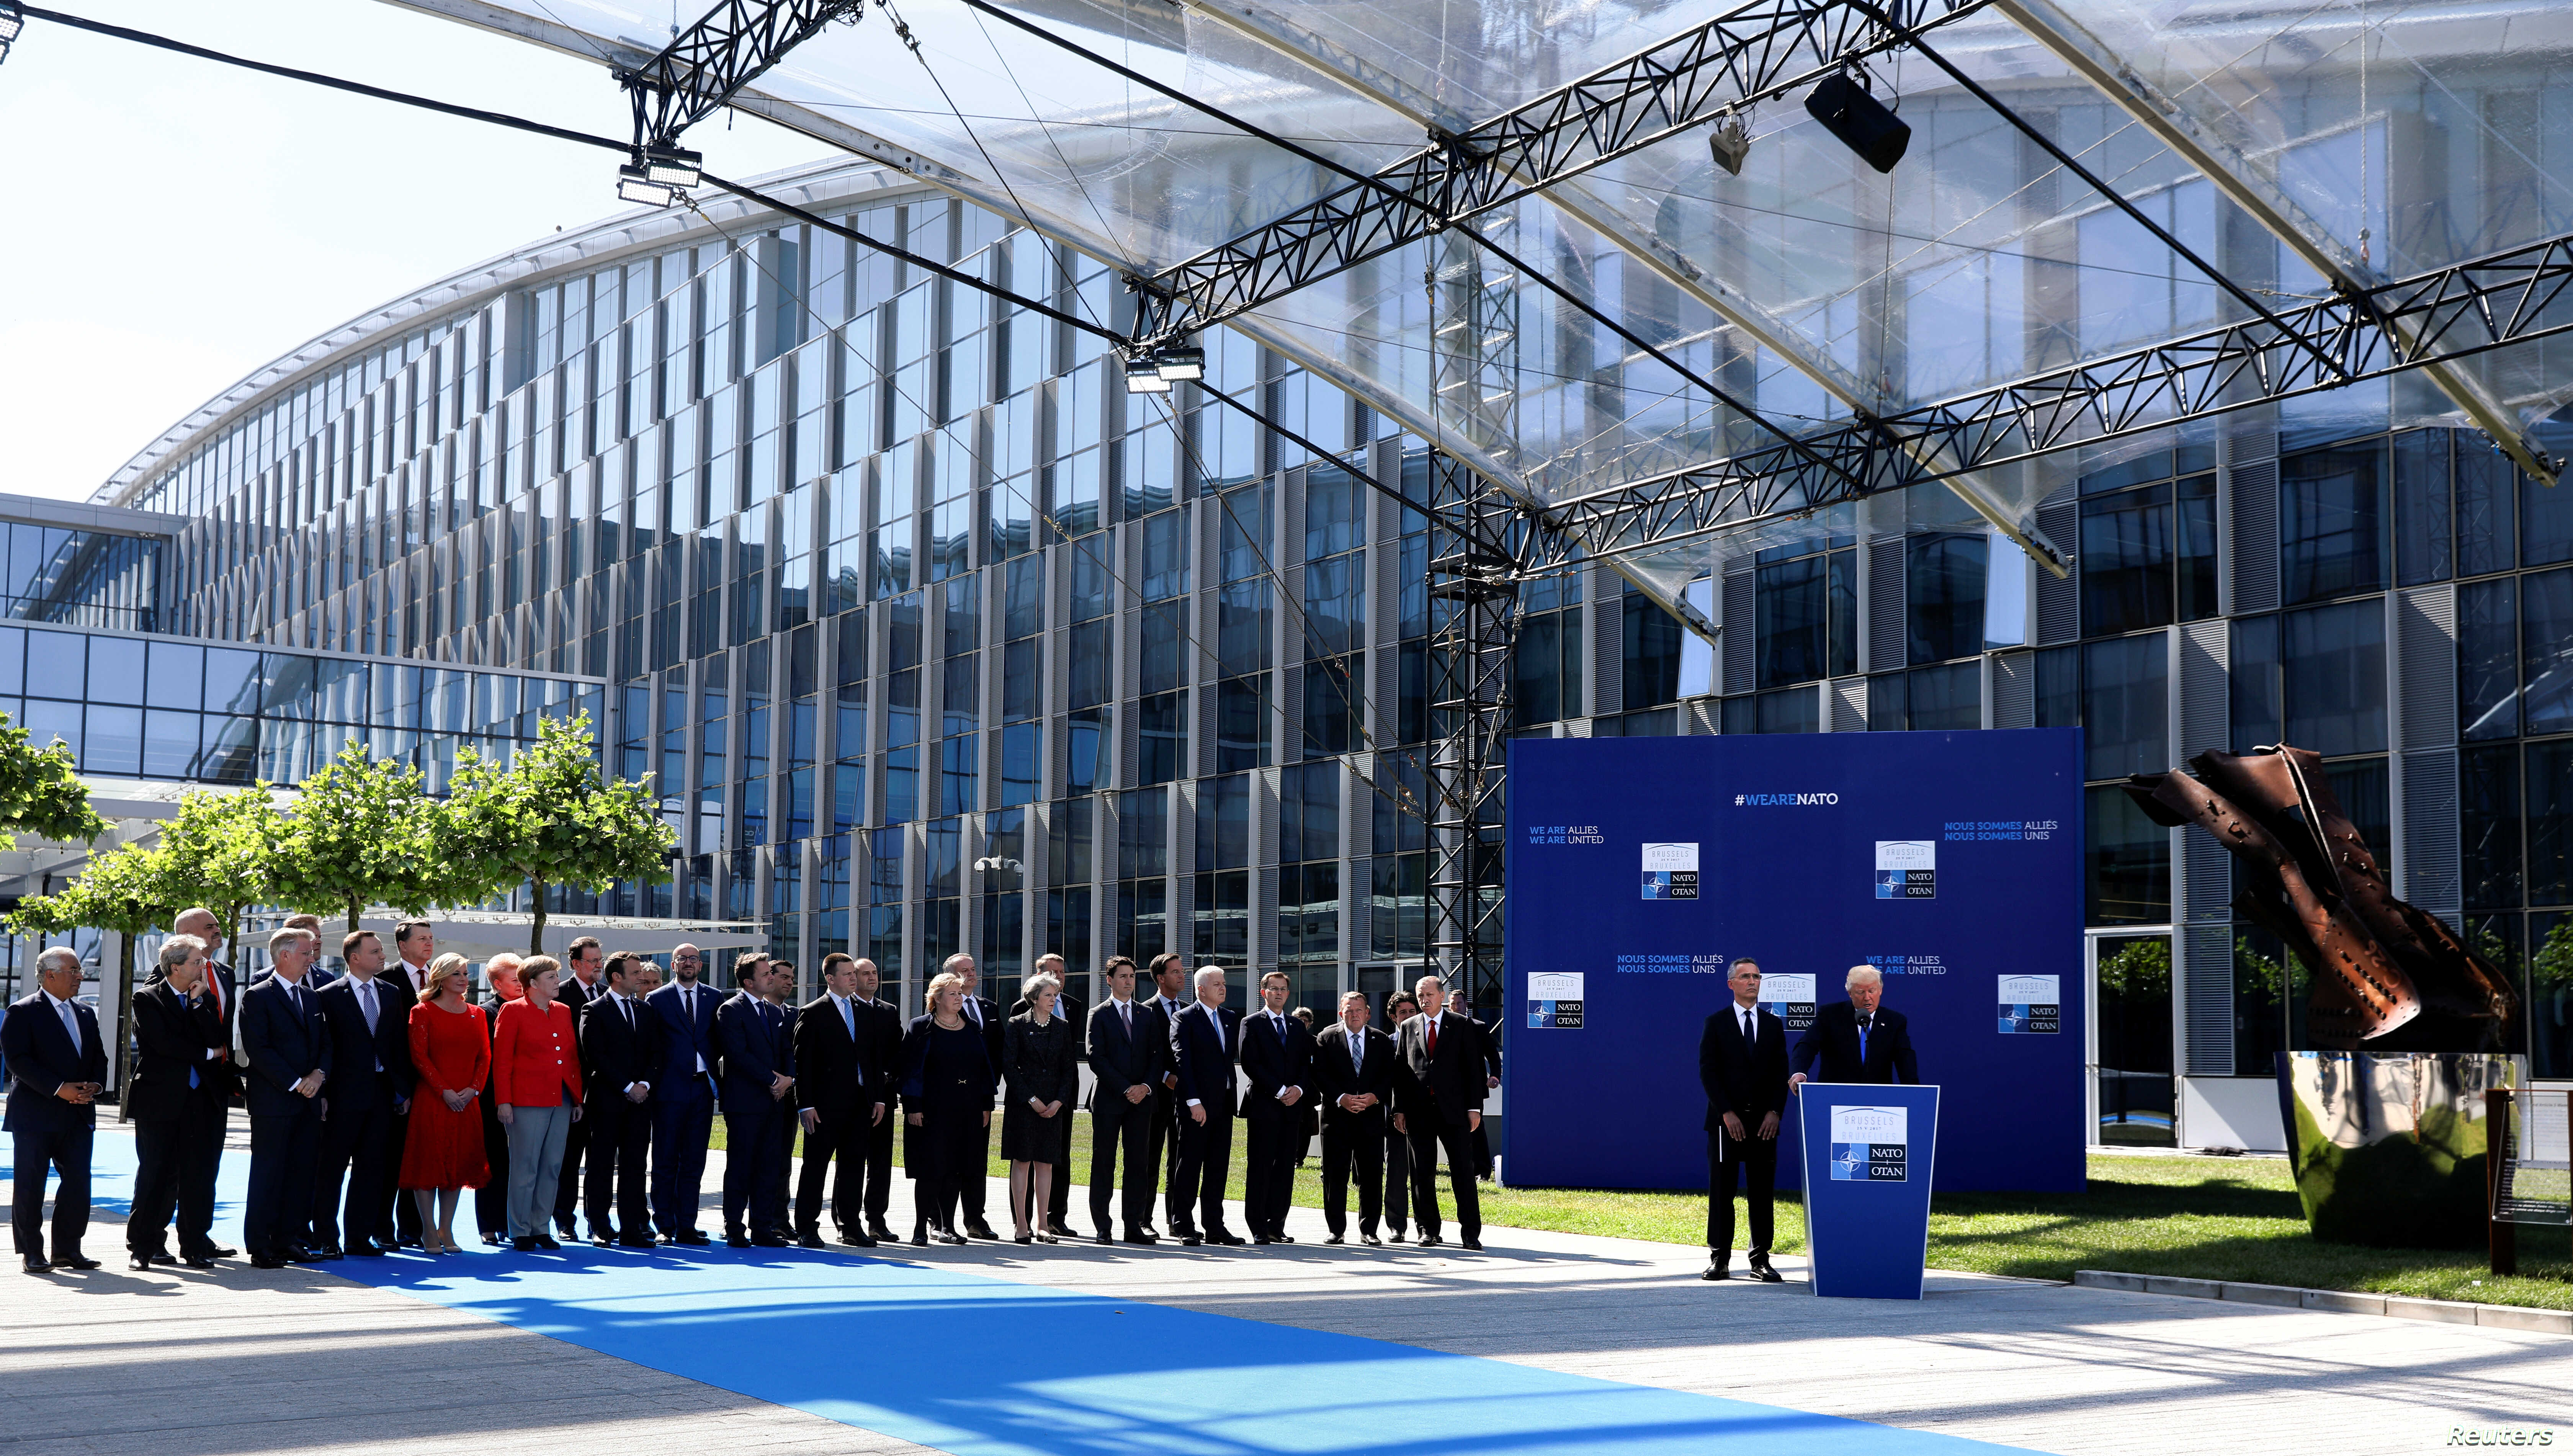 U.S. President Donald Trump delivers remarks at the start of the NATO summit at their new headquarters in Brussels, Belgium, May 25, 2017.